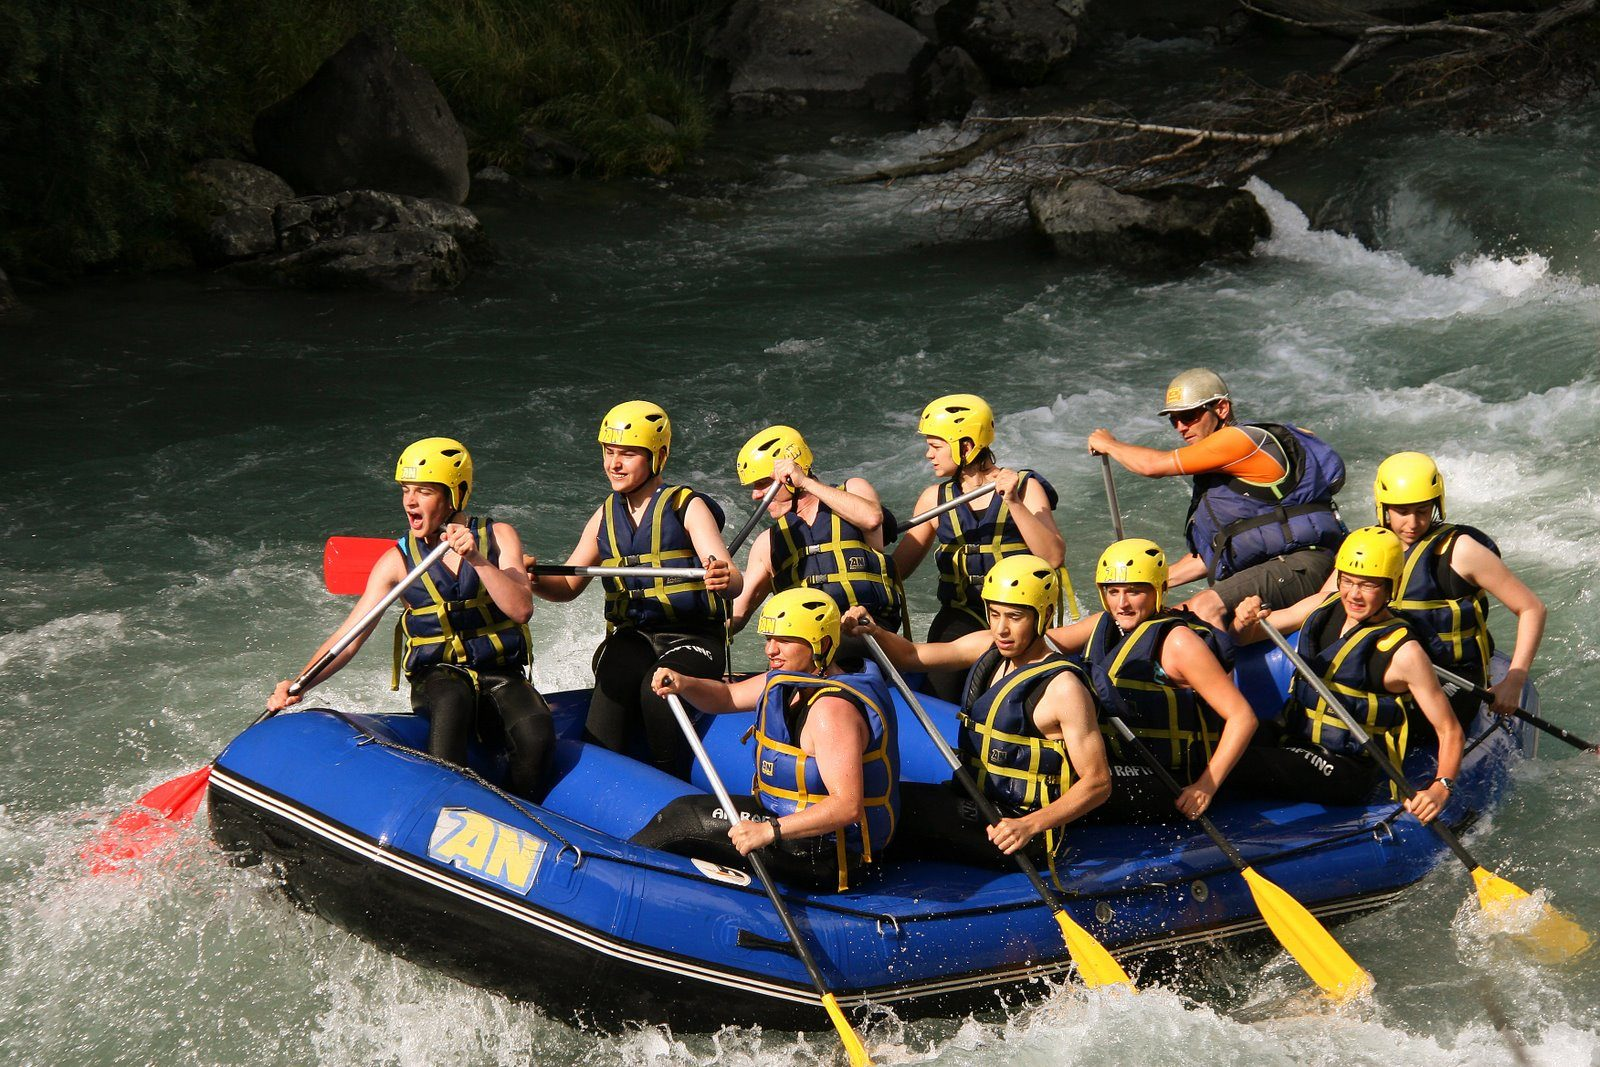 Vacances Colonies Ados Stages Activités Rafting